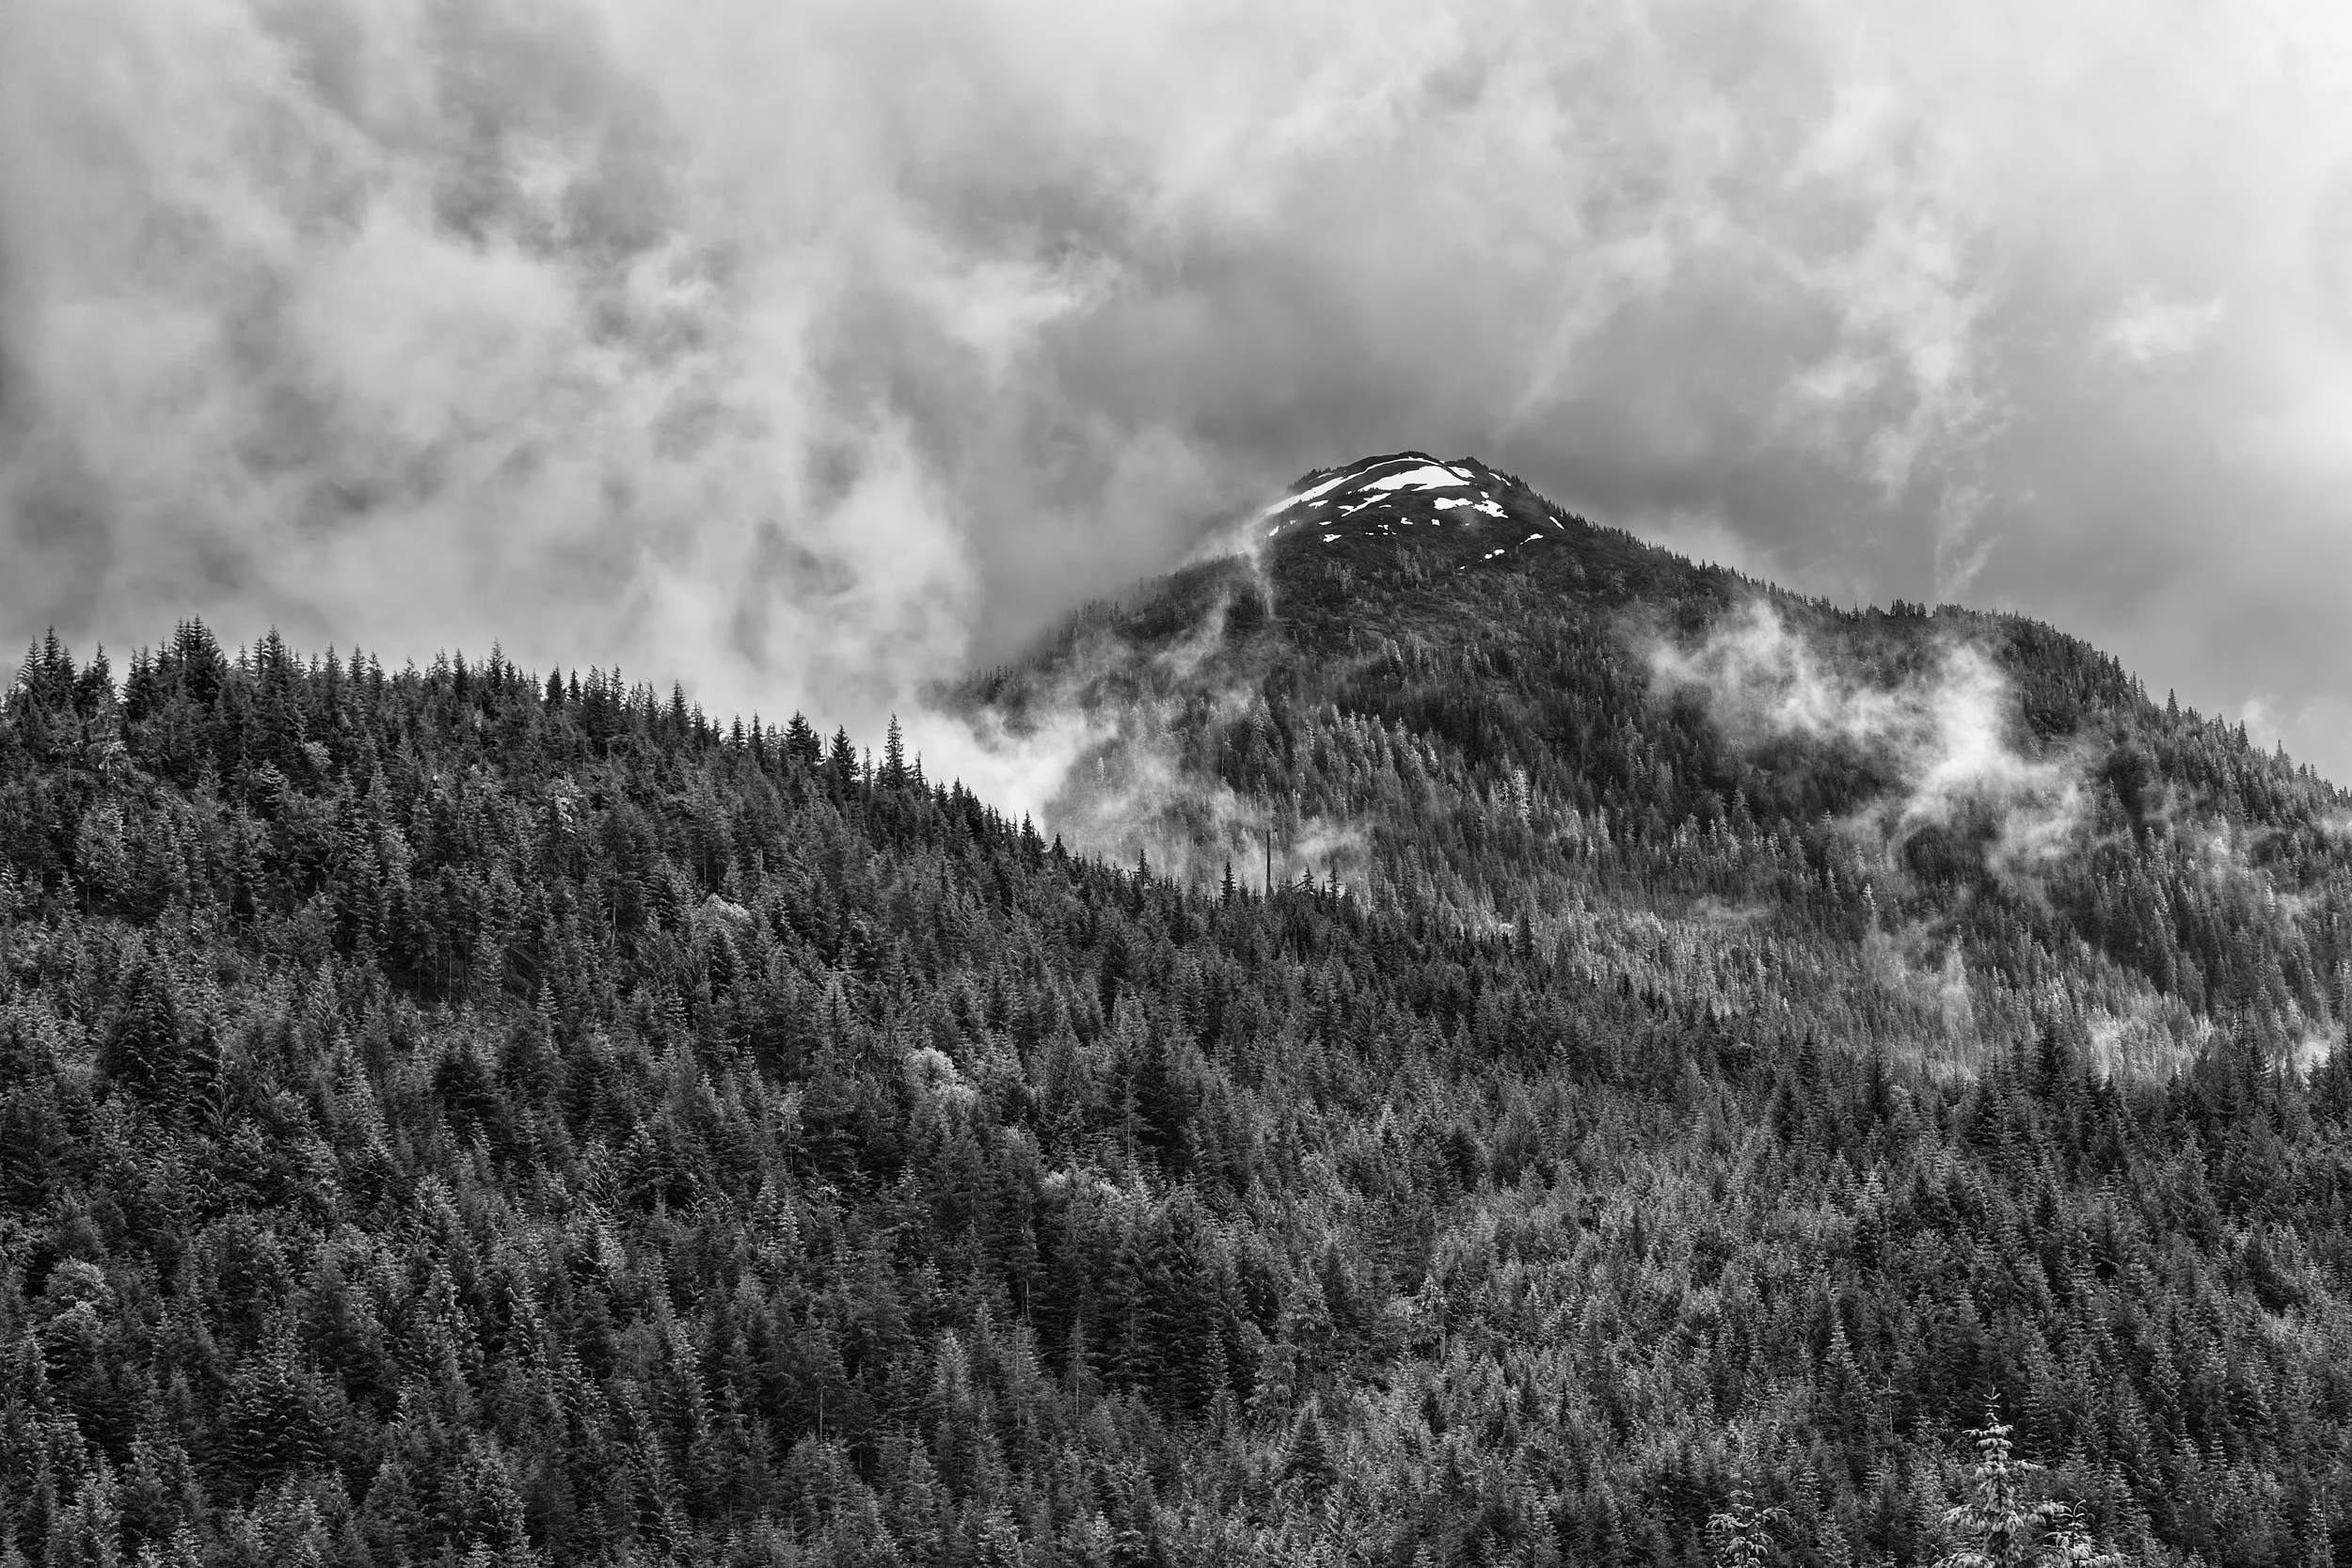 This shot looked good in color, but it was still falling flat. It wasn't evoking the same response as I felt while seeing it thru my viewfinder. But when I converted it to black and white, all of a sudden it popped and I got an amazing image. Shot with Canon 5d Mark II